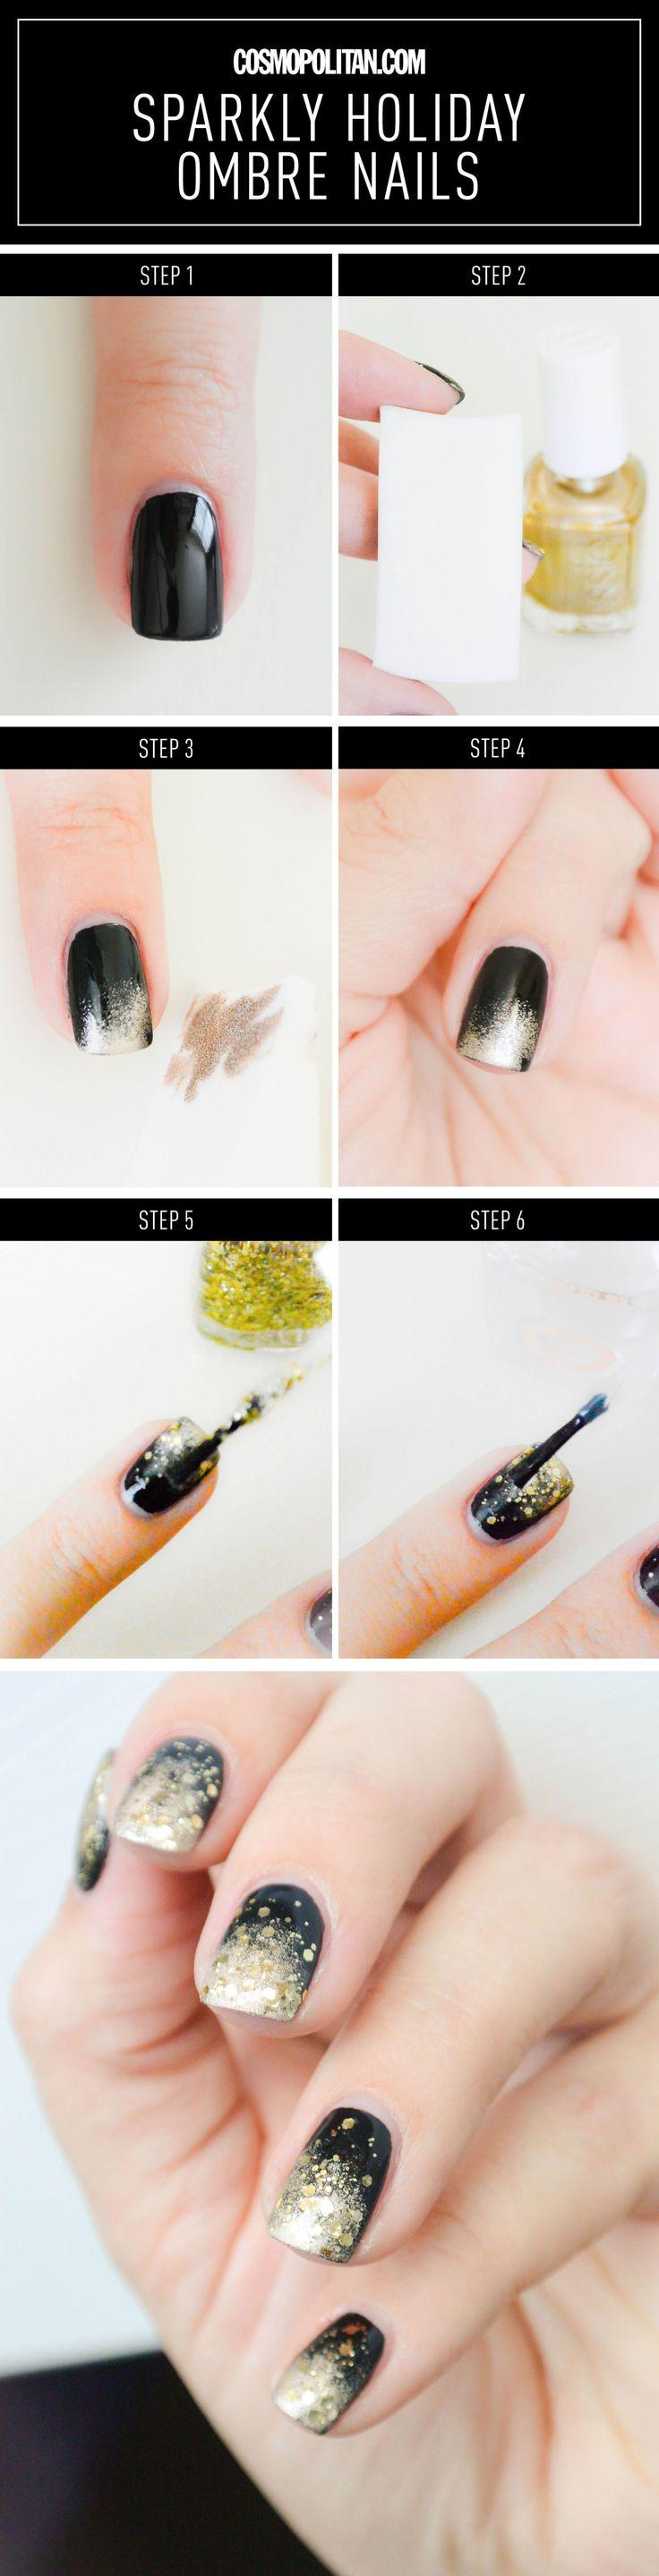 Wedding - Nail Art How-To: Sparkly Black And Gold Ombré Mani